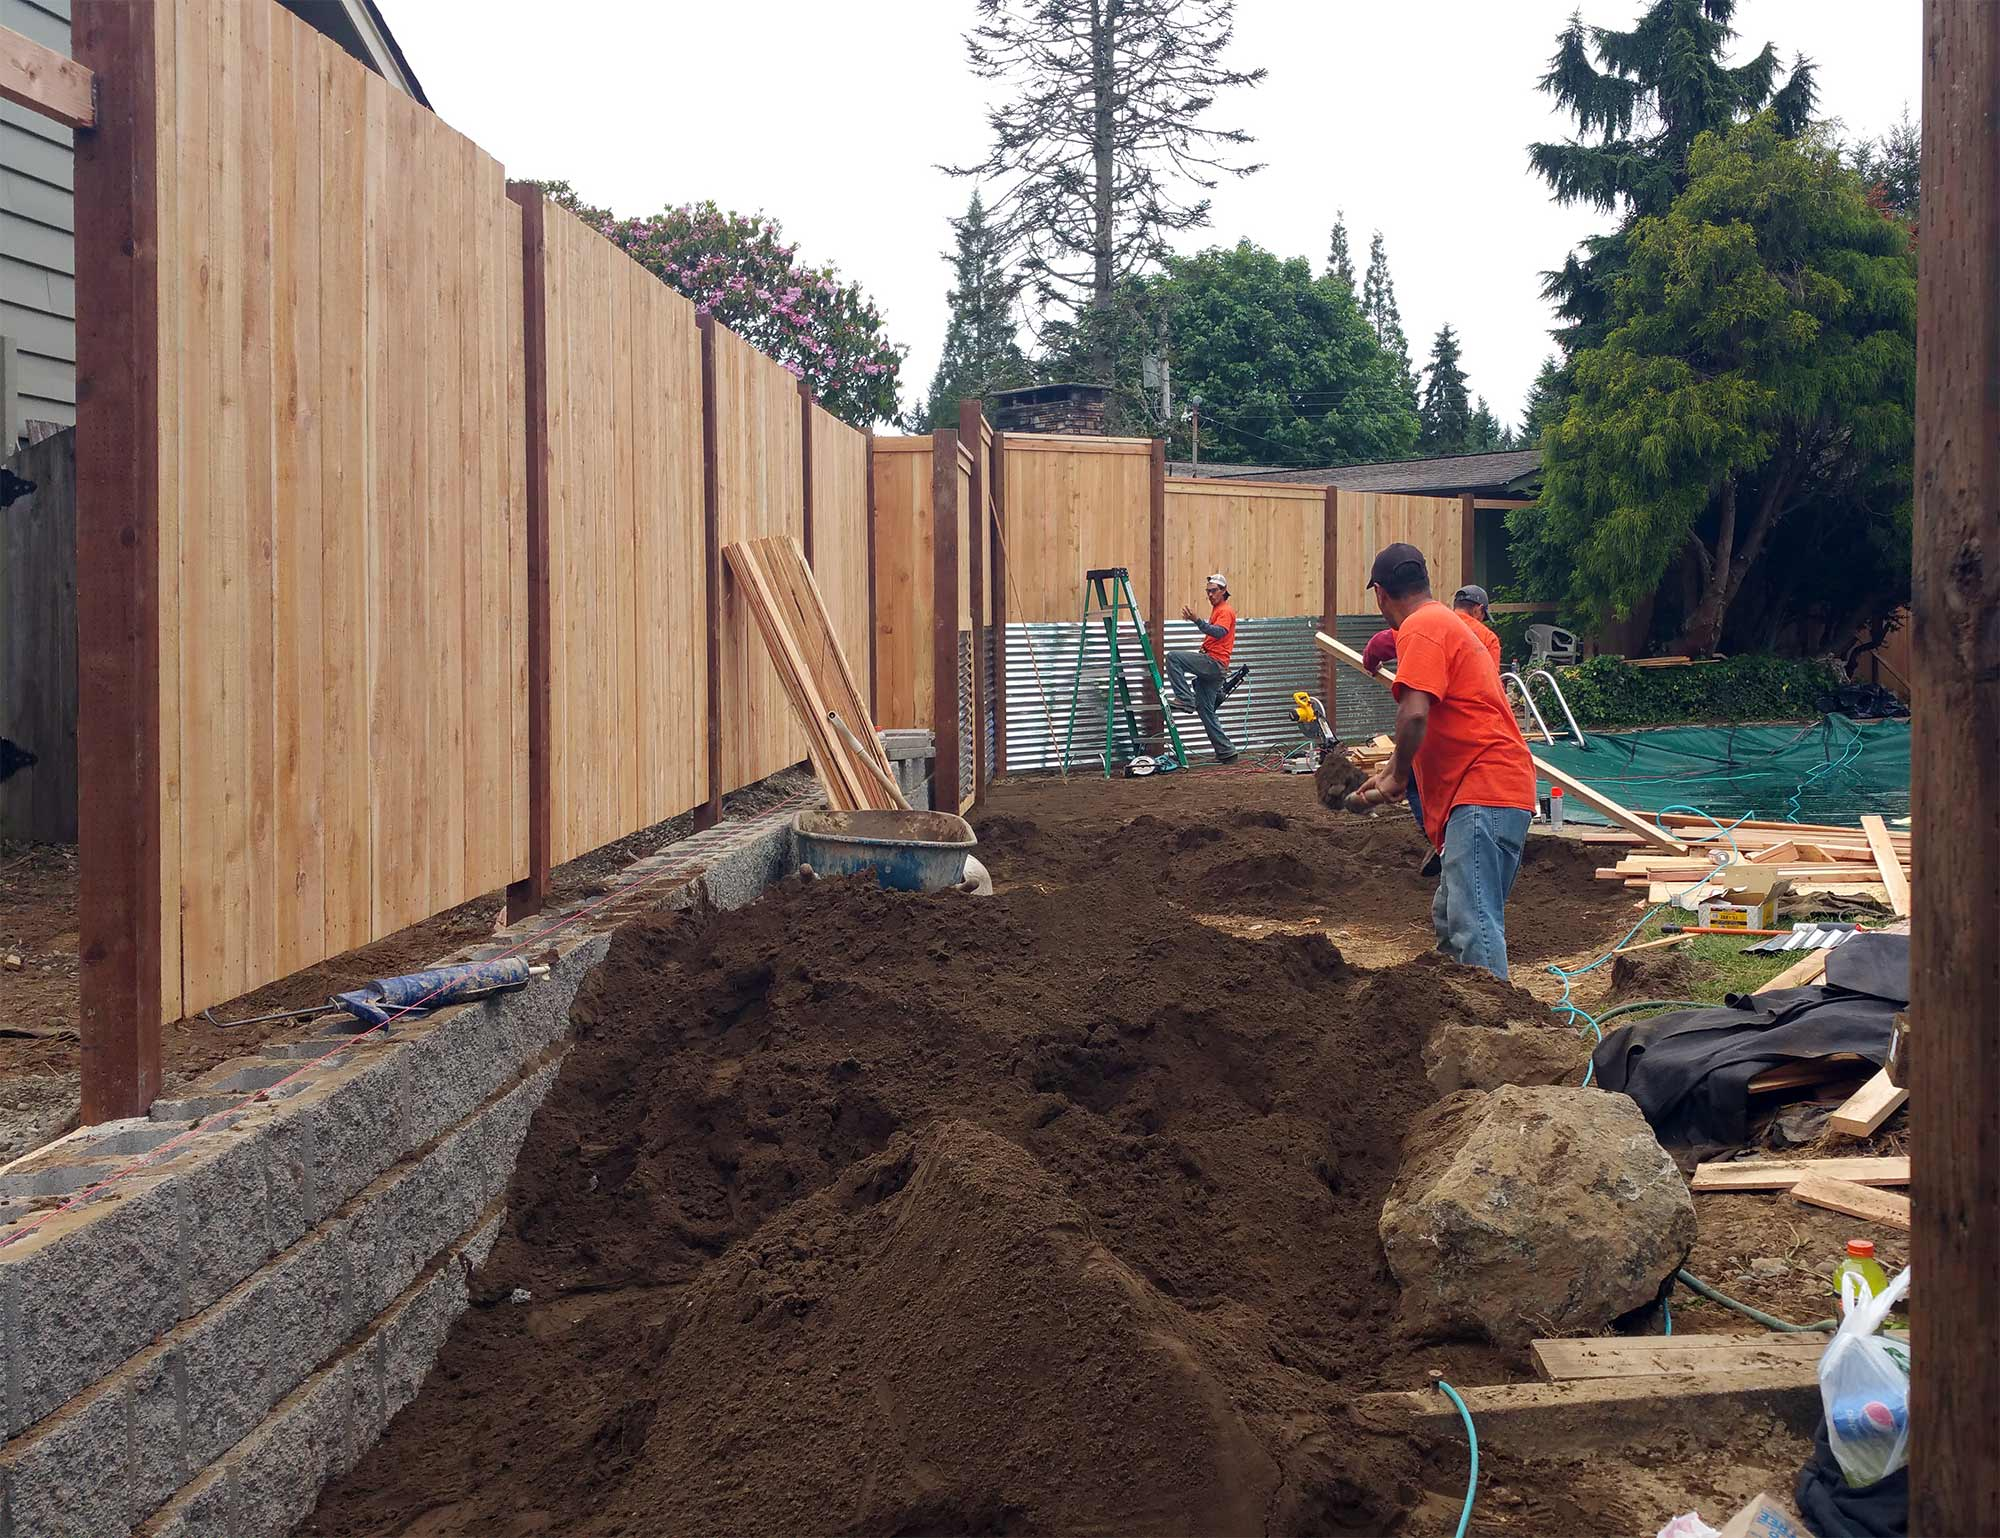 South Olympia Poolside Transformation - AJB Landscaping & Fence